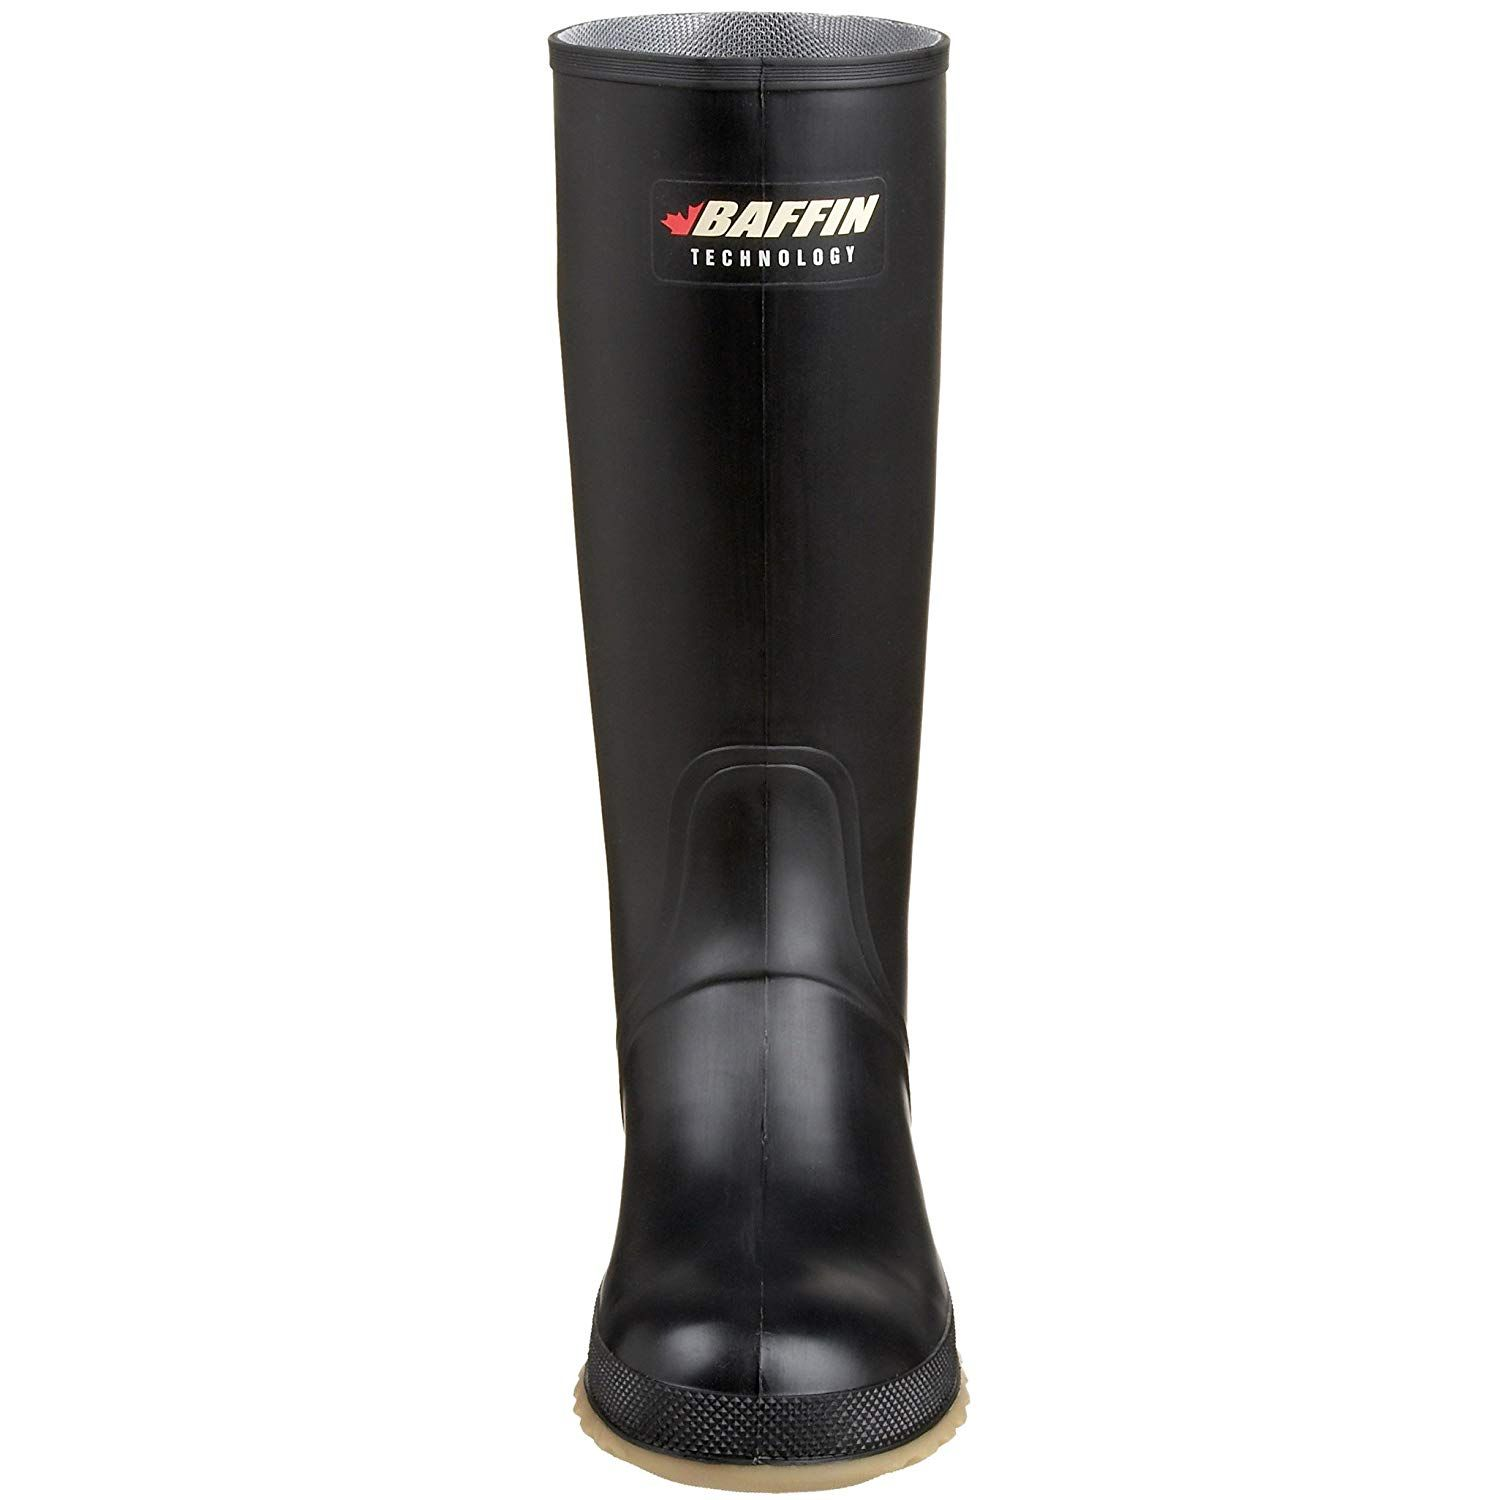 Baffin womens processor canadian made industrial rubber